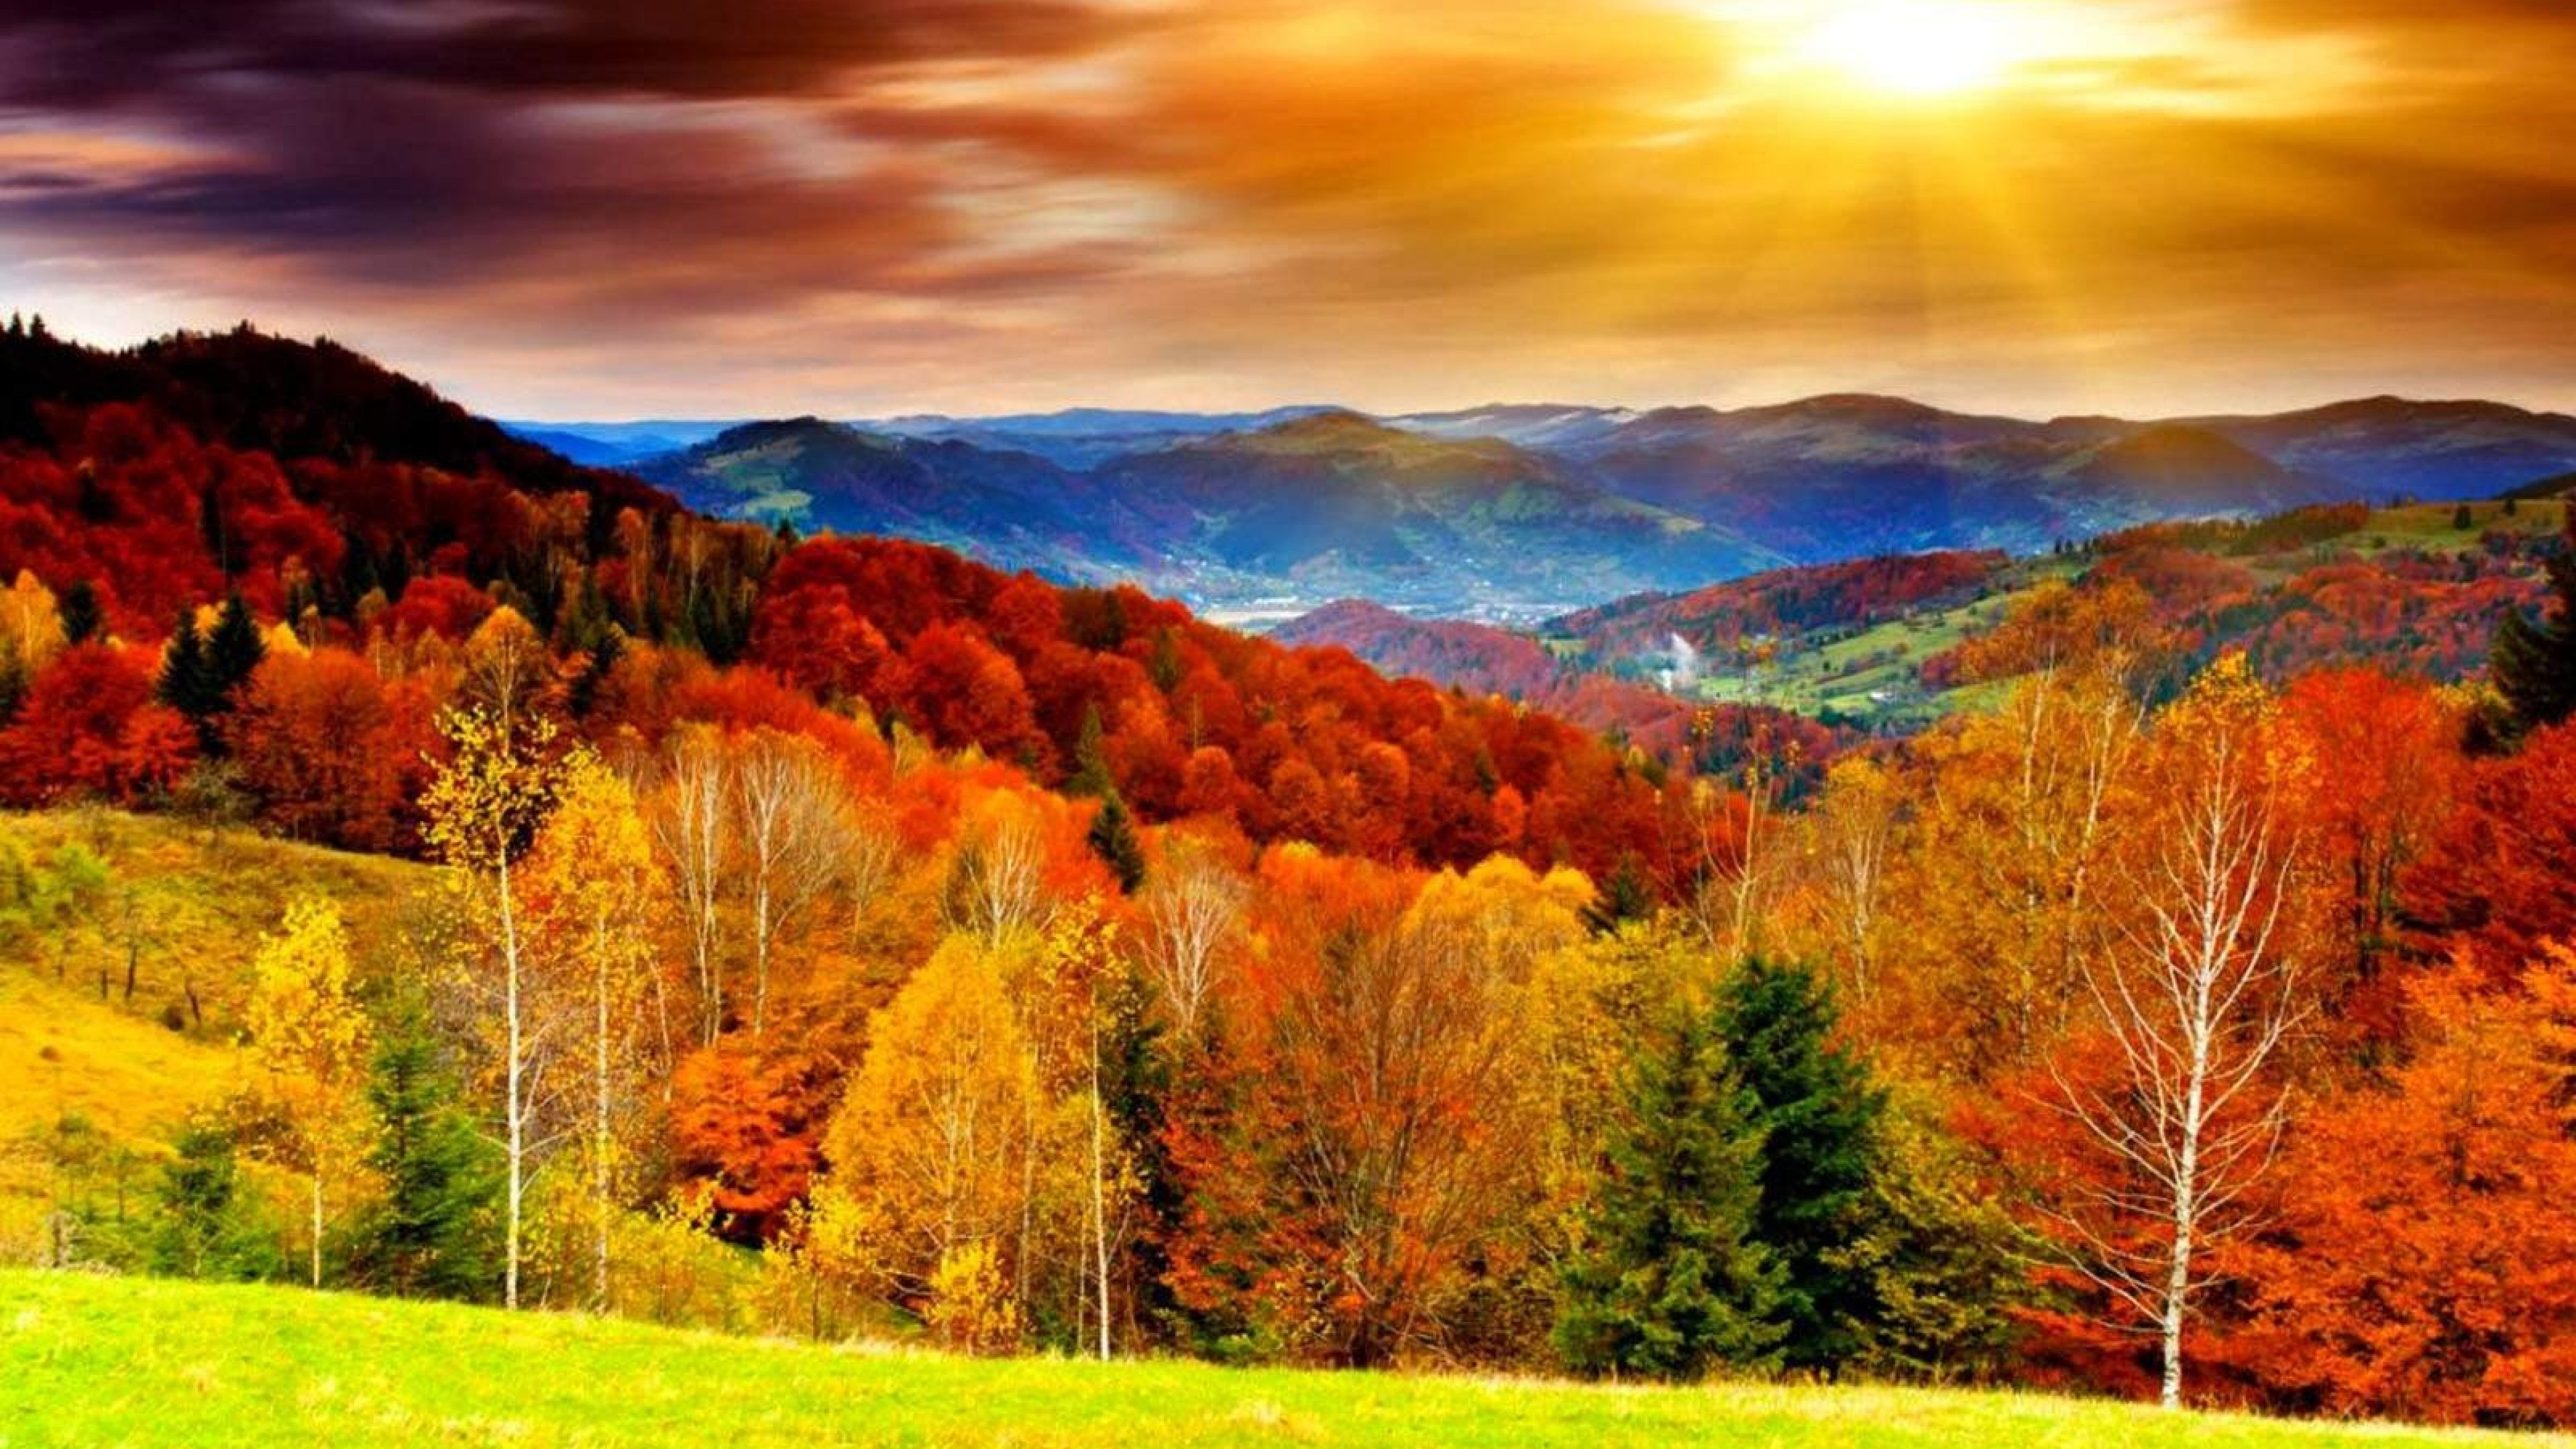 Free Autumn Desktop Wallpaper Src Download Free Autumn 3840x2160 Download Hd Wallpaper Wallpapertip